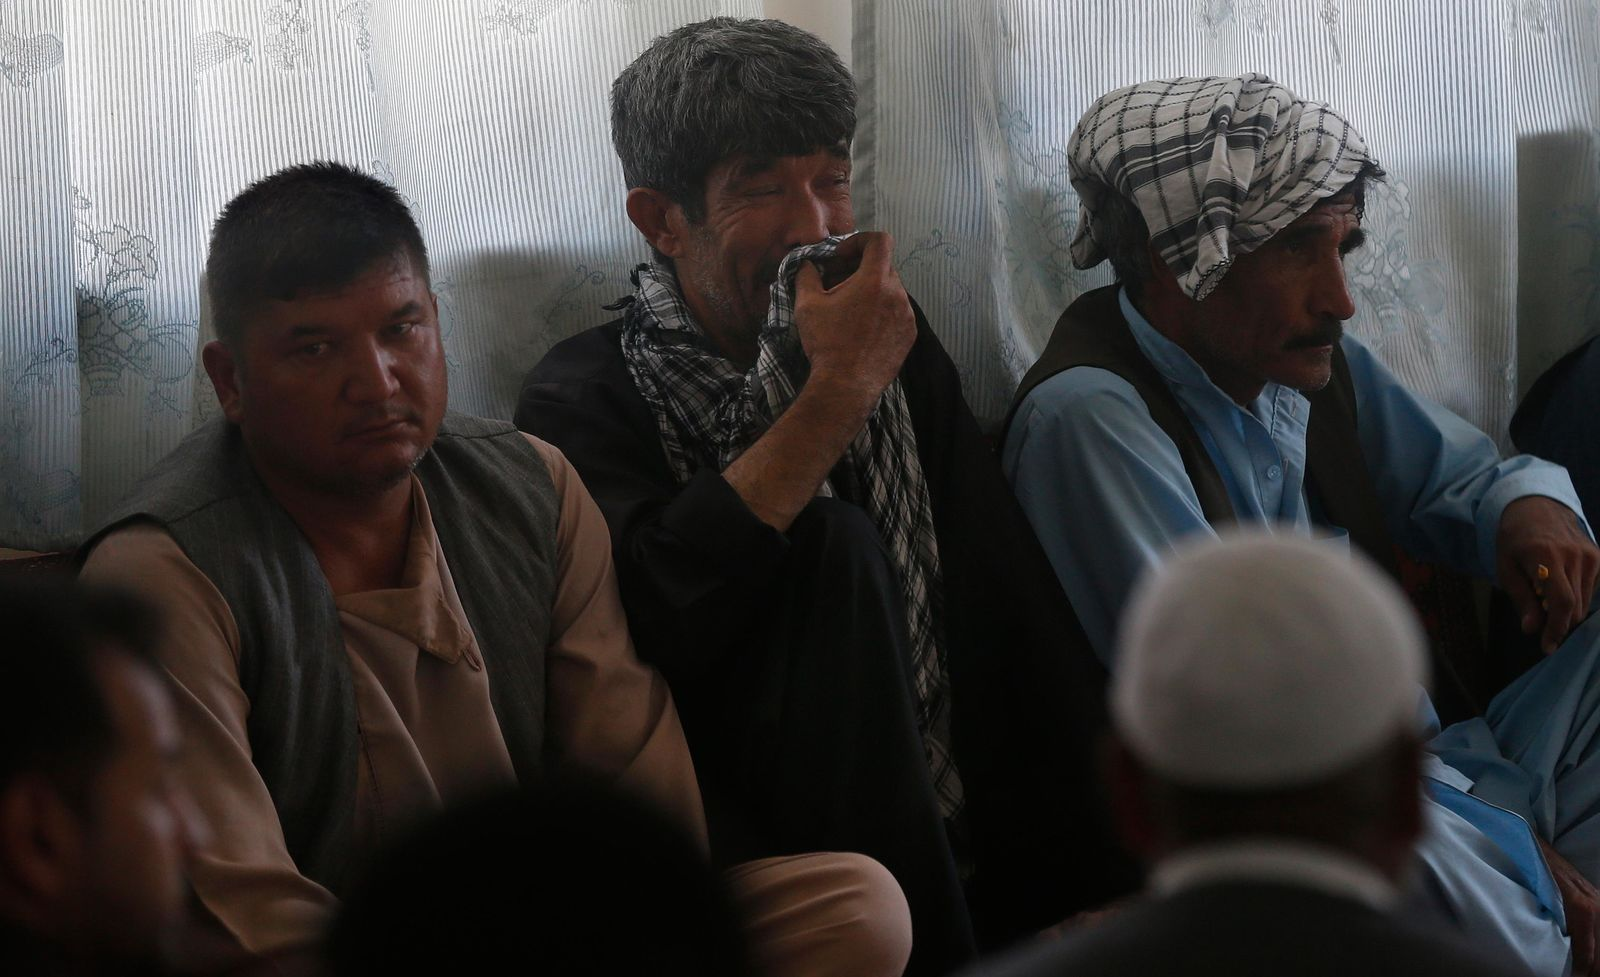 Men mourn for victims of the Dubai City wedding hall bombing during a memorial service at a mosque in Kabul, Afghanistan, Tuesday, Aug. 20, 2019. Hundreds of people have gathered in mosques in Afghanistan's capital for memorials for scores of people killed in a horrific suicide bombing at a Kabul wedding over the weekend. (AP Photo/Rafiq Maqbool)